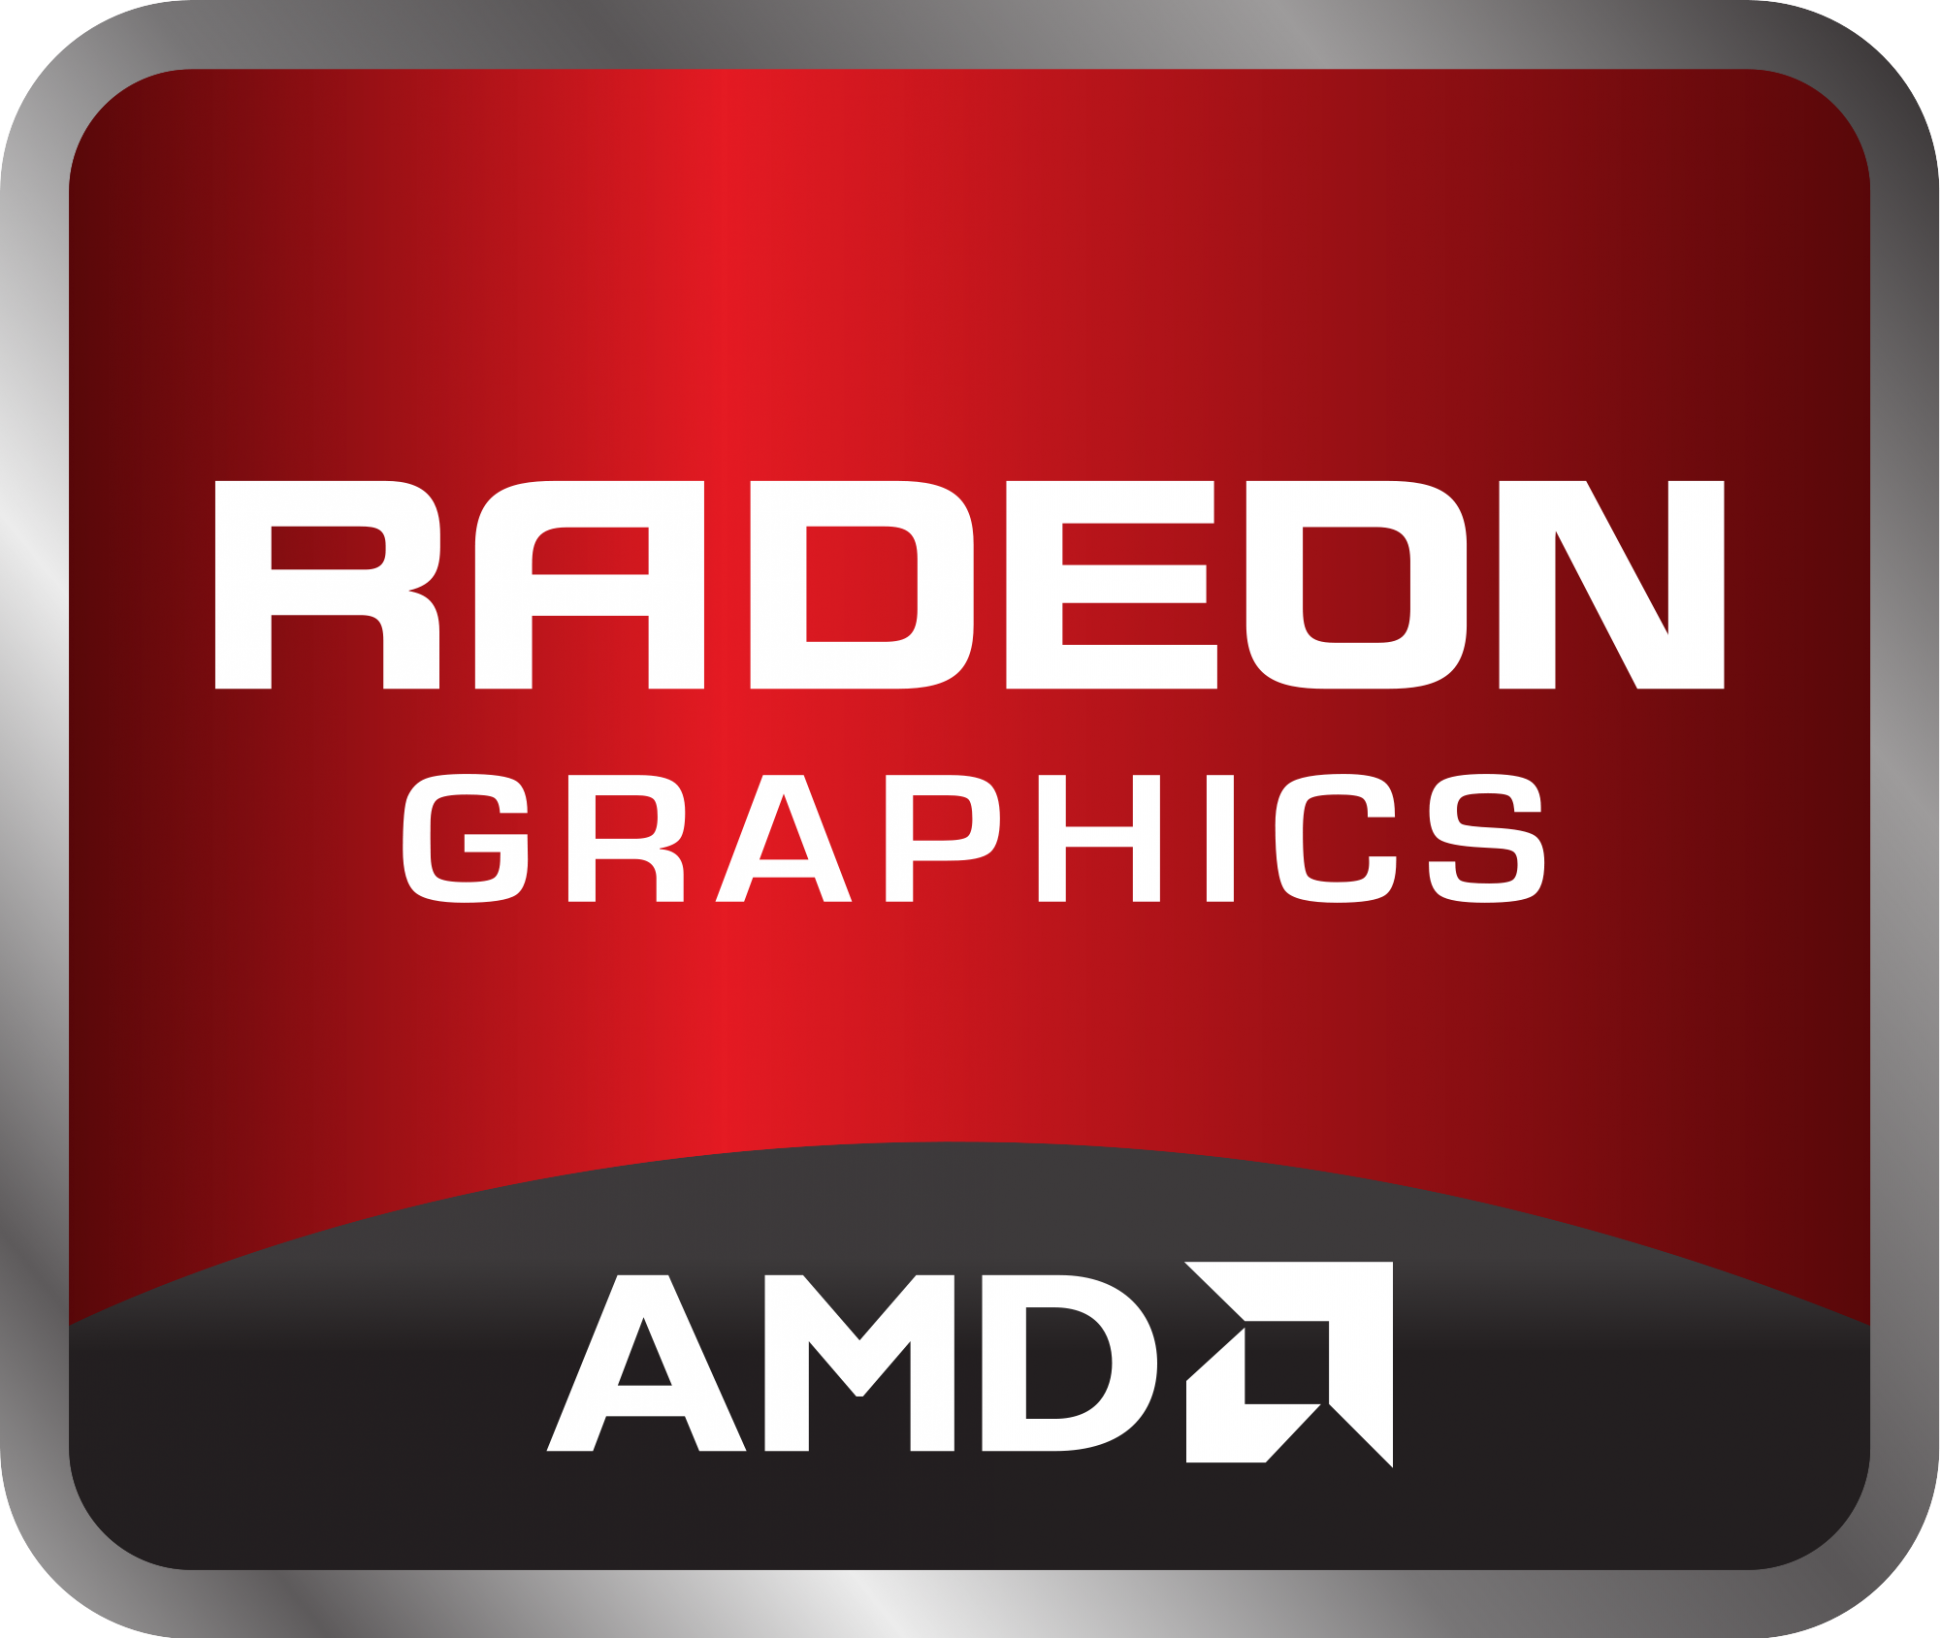 Amd Backgrounds, Compatible - PC, Mobile, Gadgets| 1940x1638 px